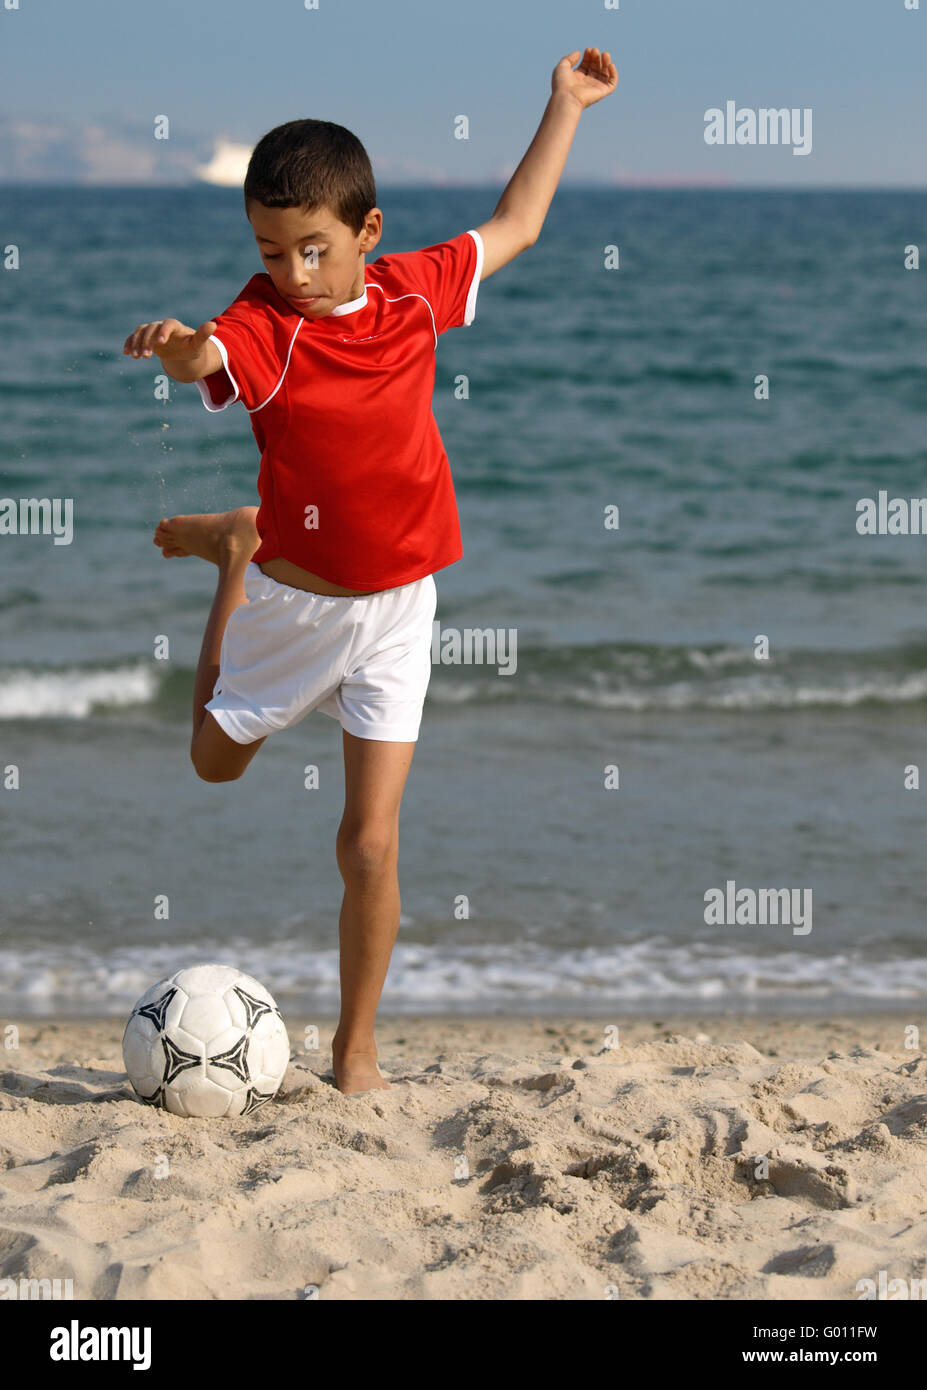 boy playing soccer on the beach - Stock Image